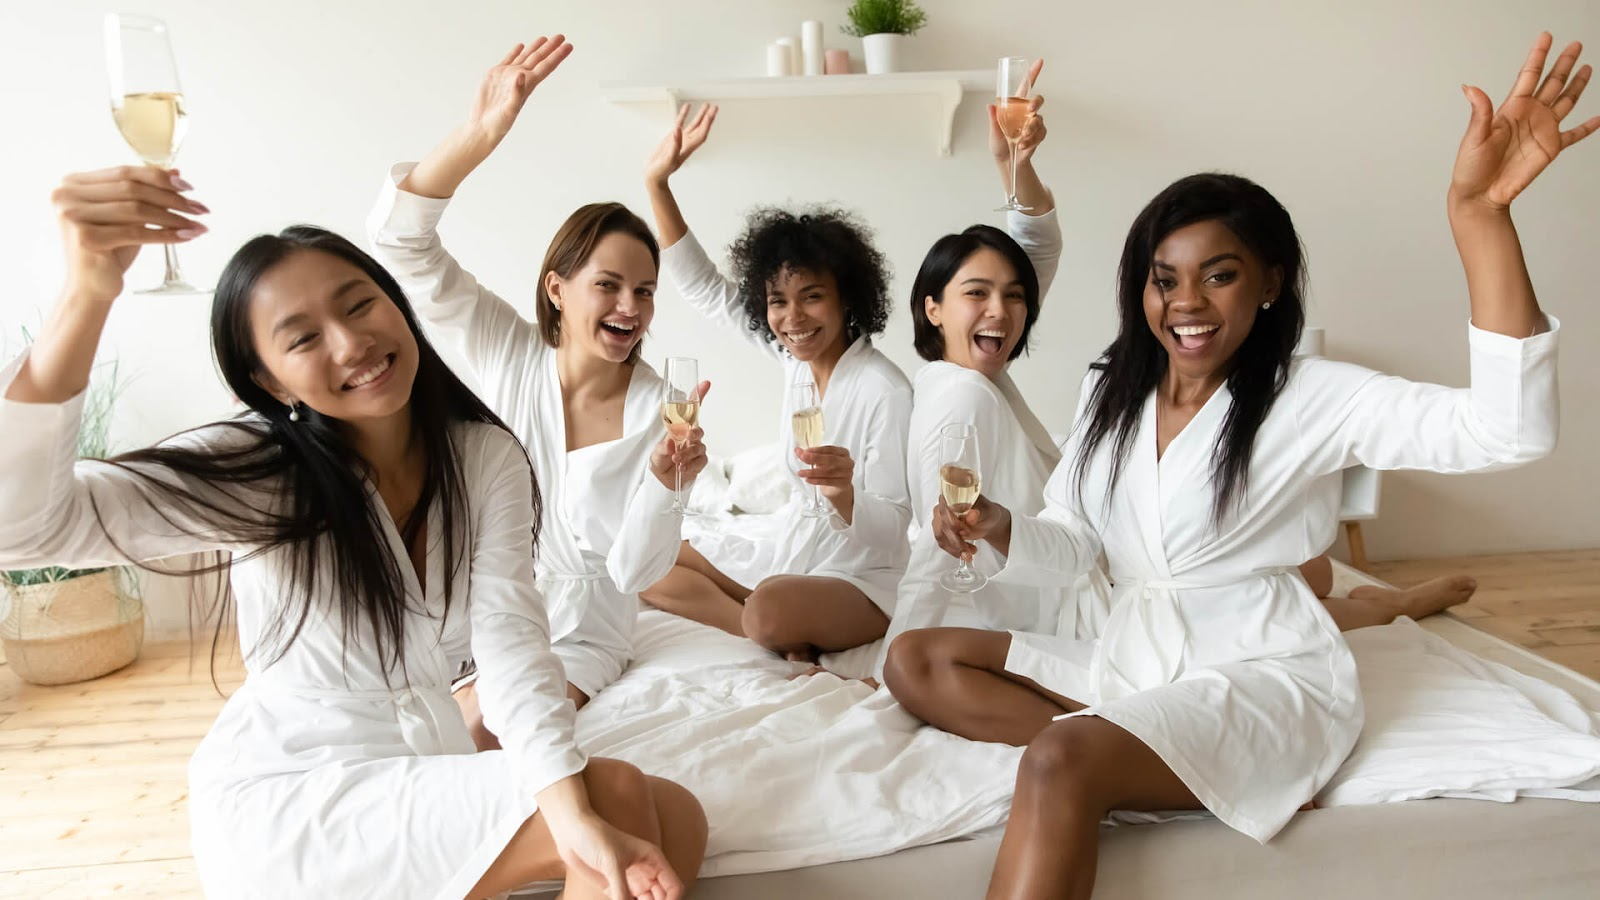 Bridal party enjoying cocktails in matching white robes